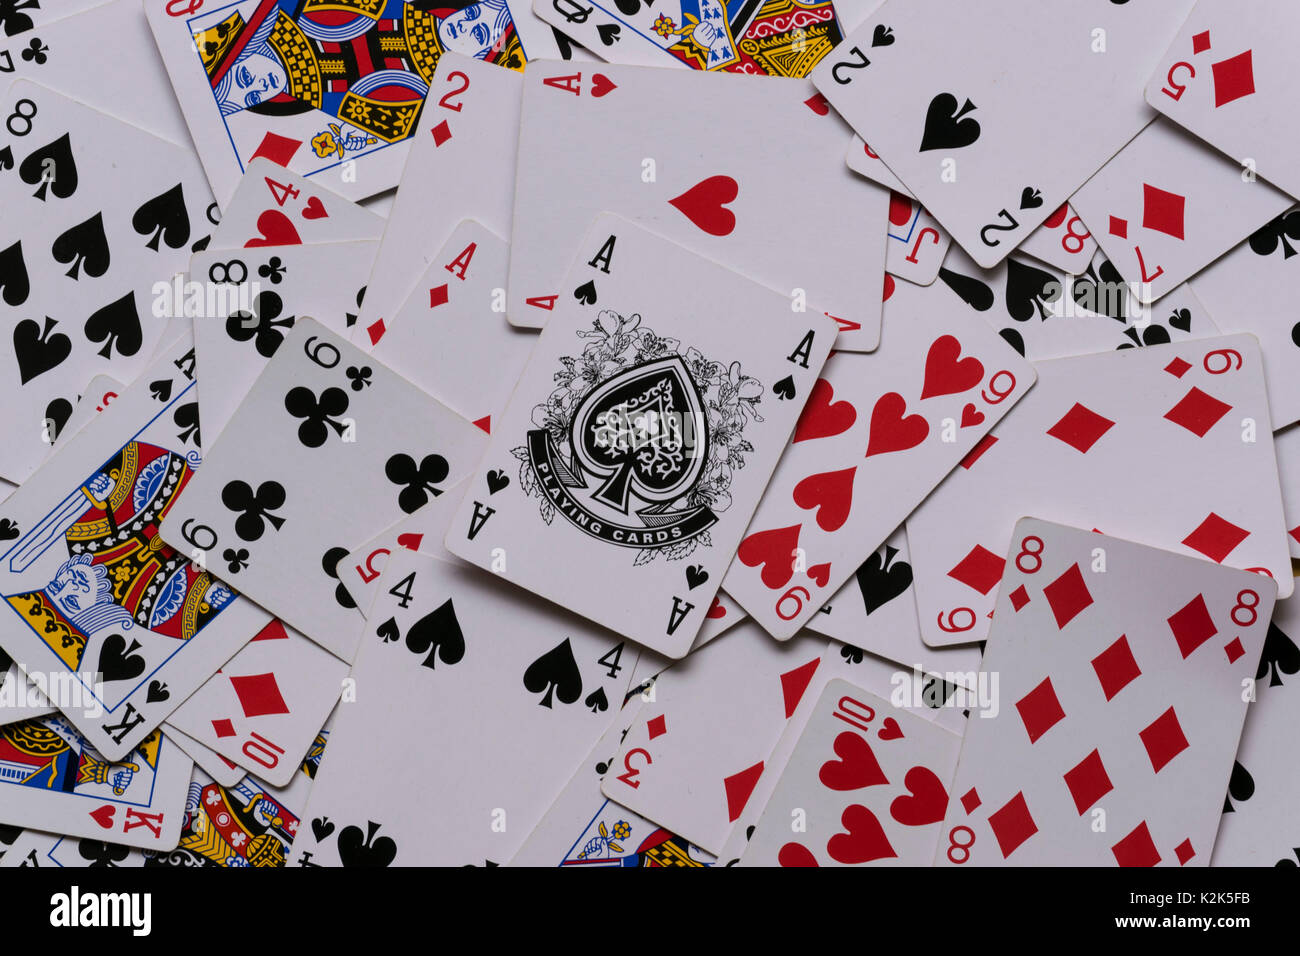 a deck of cards in a messy pile showing the Ace of Spades on top of the pile. - Stock Image